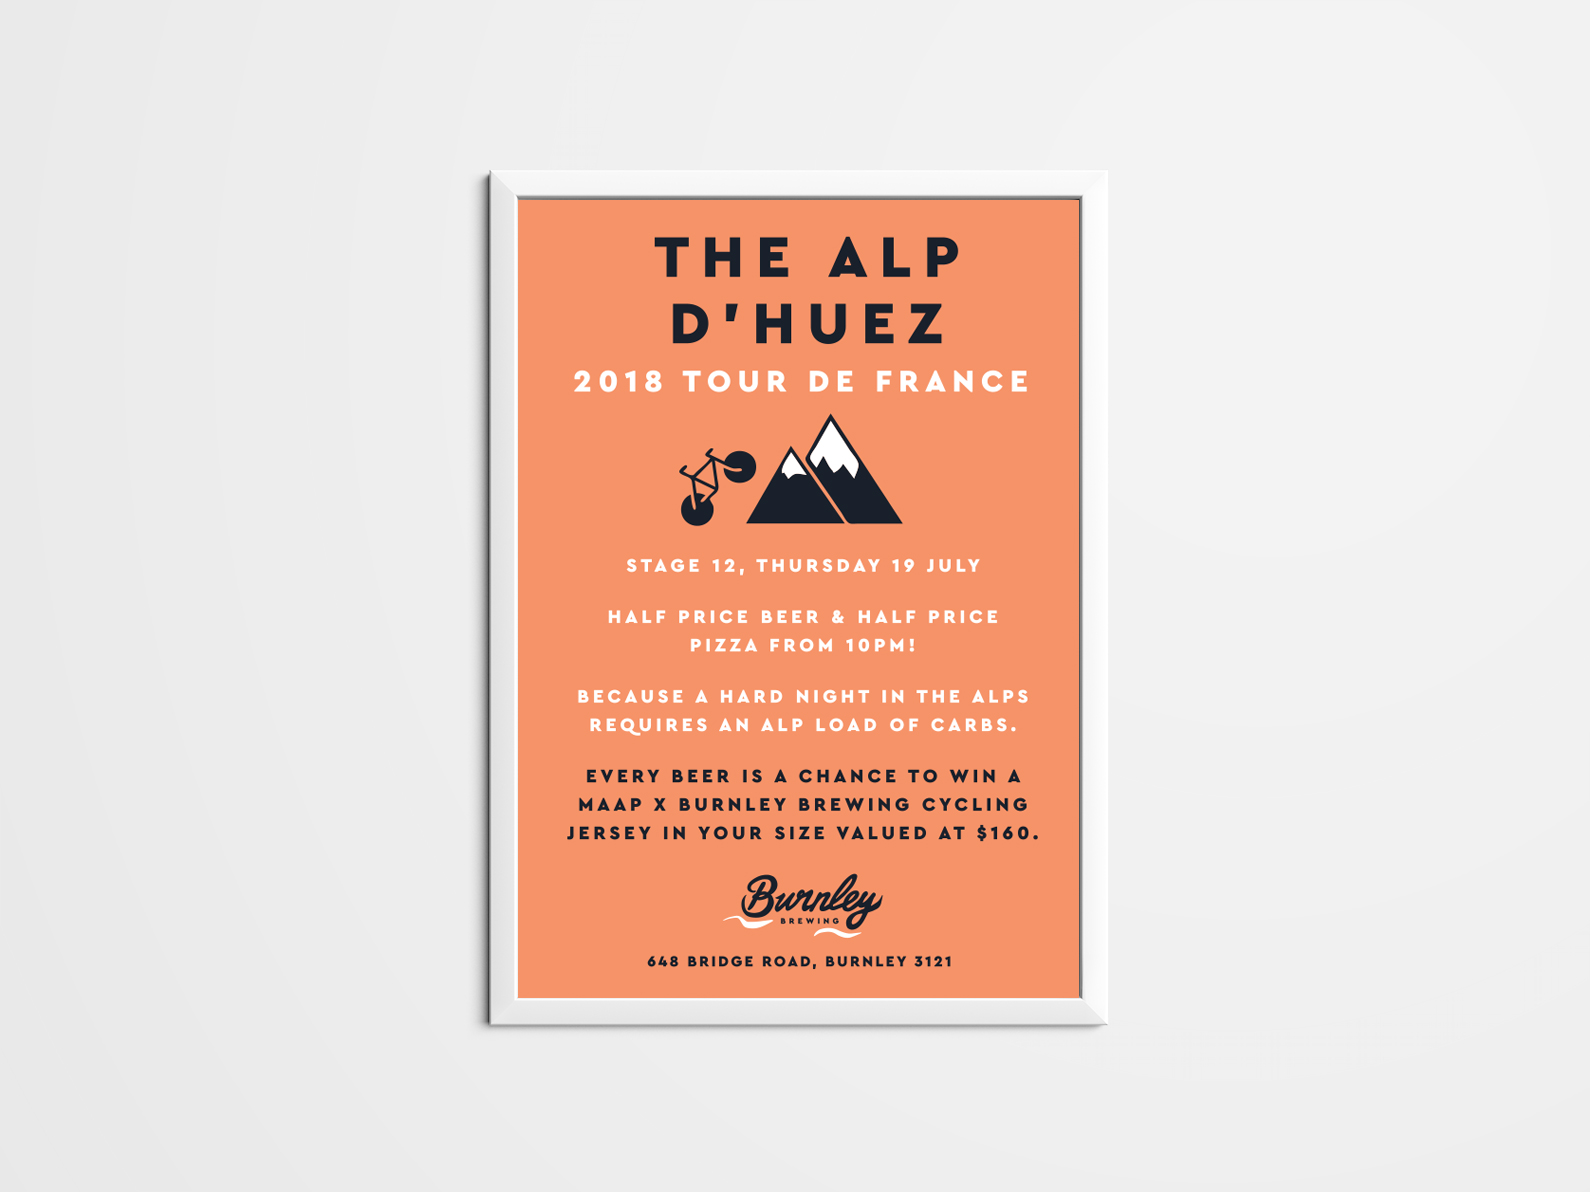 Studio-Mimi-Moon-Design-&-Illustration-Burnley-Brewing-Melbourne-POSTERS-3